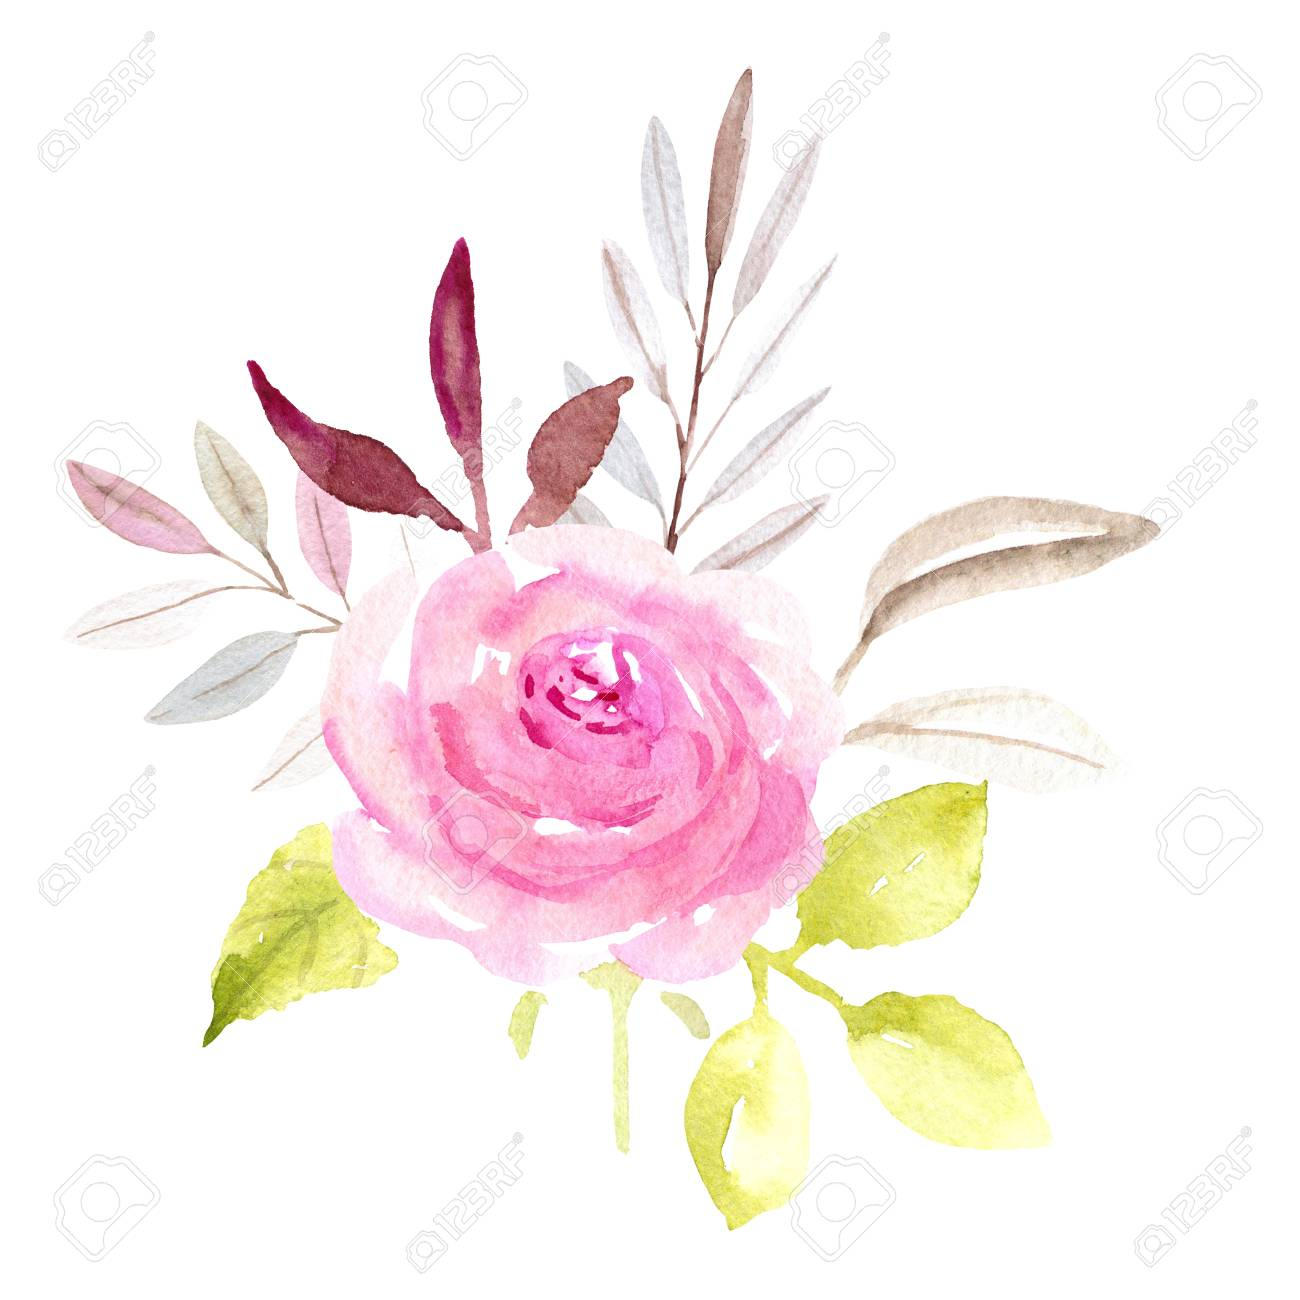 Pink Single Rose Flower Watercolor Illustration On White Background